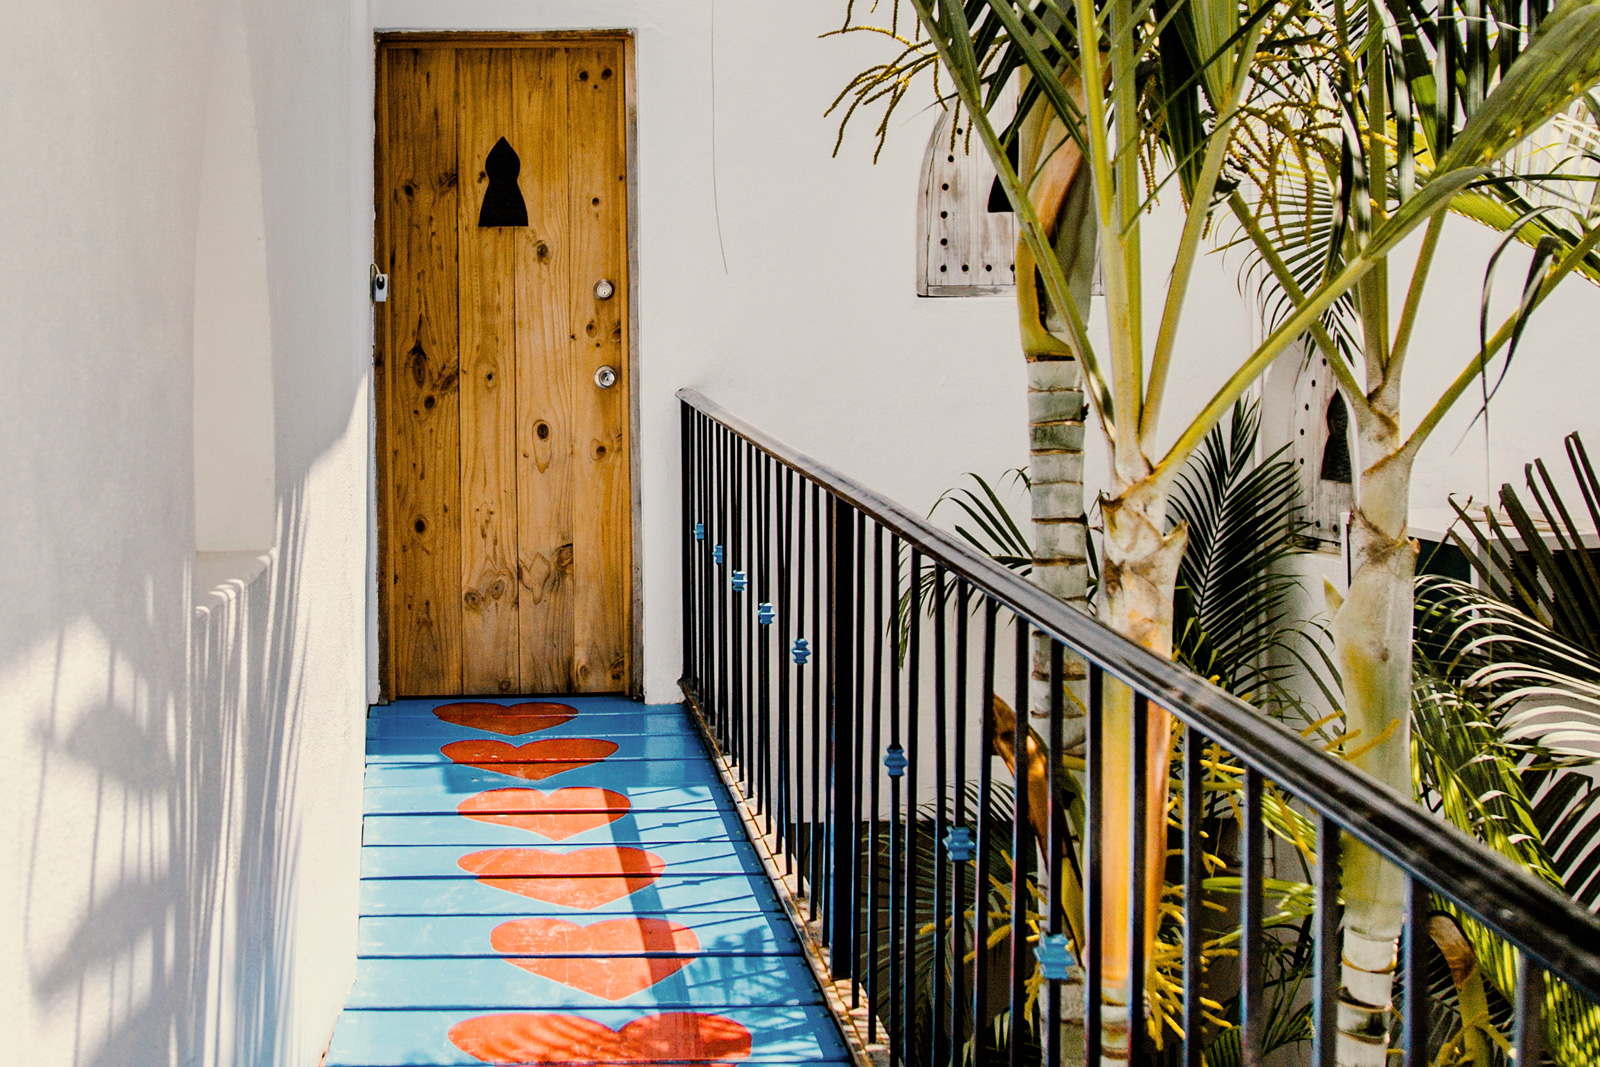 Sayulita & san pancho: tradition and community, vallartalifestyles